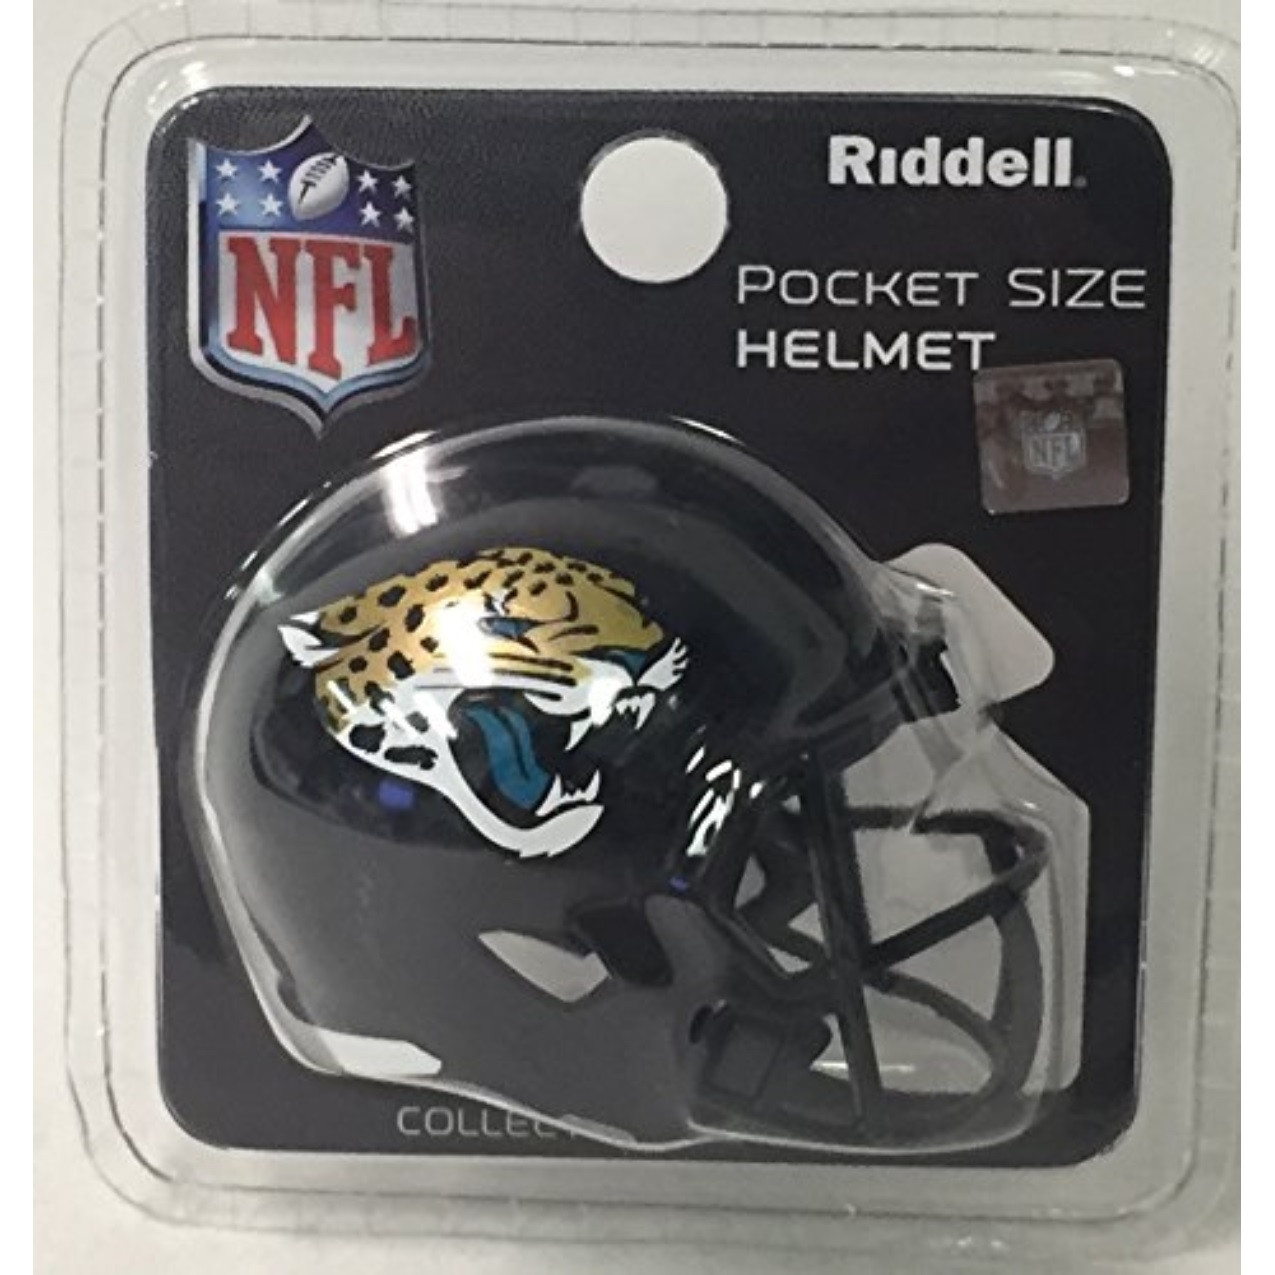 bf5635e6 Jaguars Riddell NFL Speed Pocket Pro Helmets Sports & Outdoors Supporters  Gear